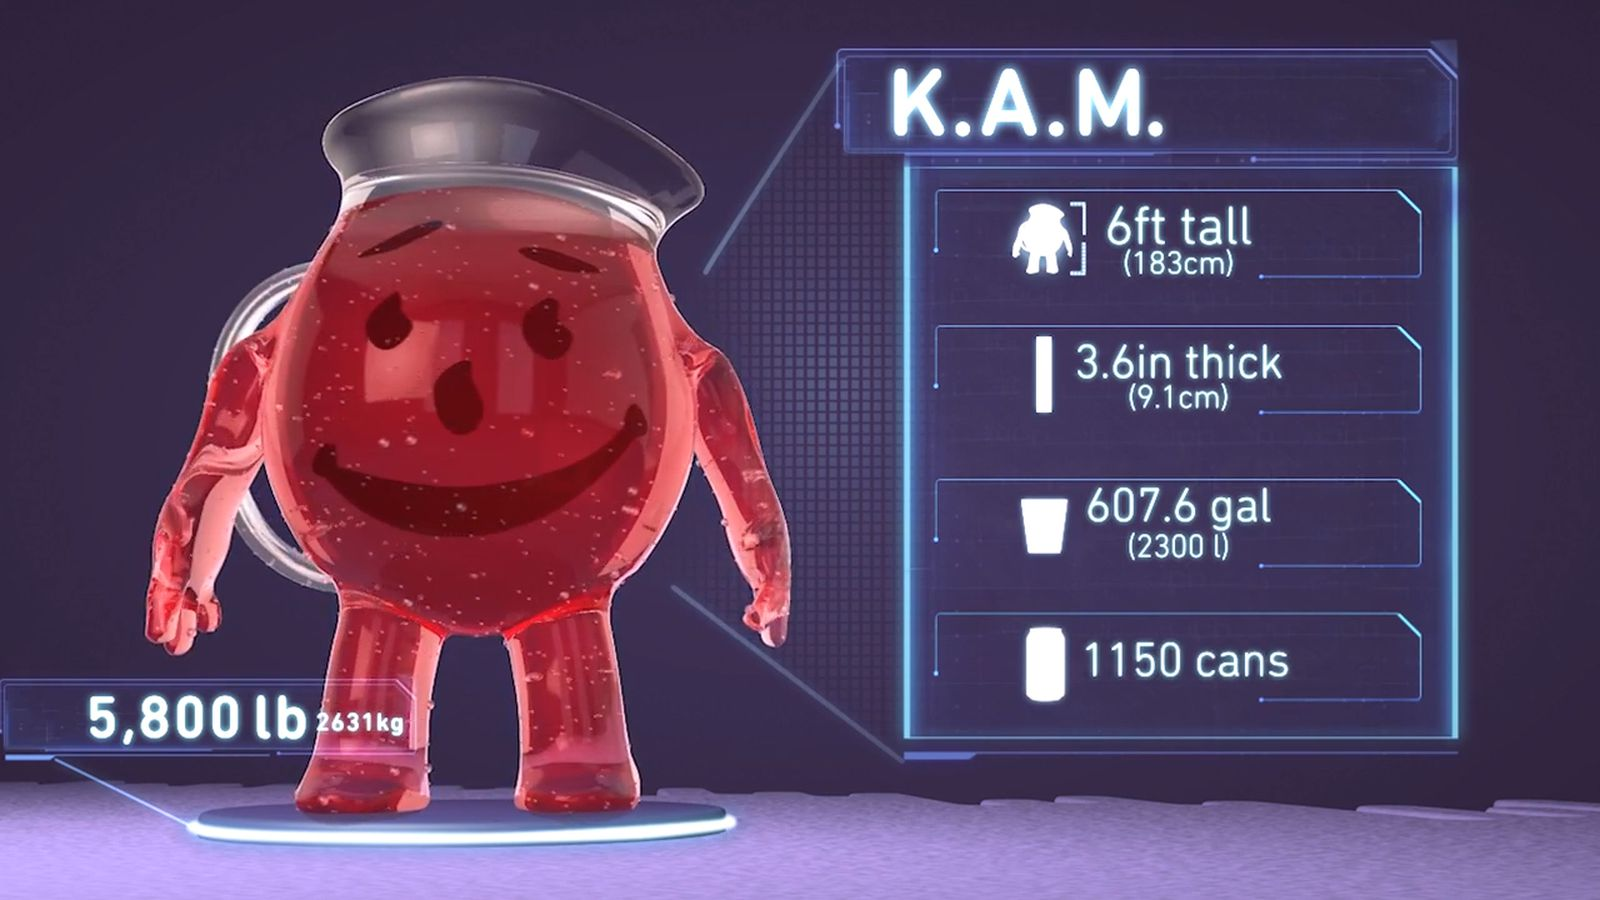 Finally Proof That The Kool Aid Man Could Actually Break